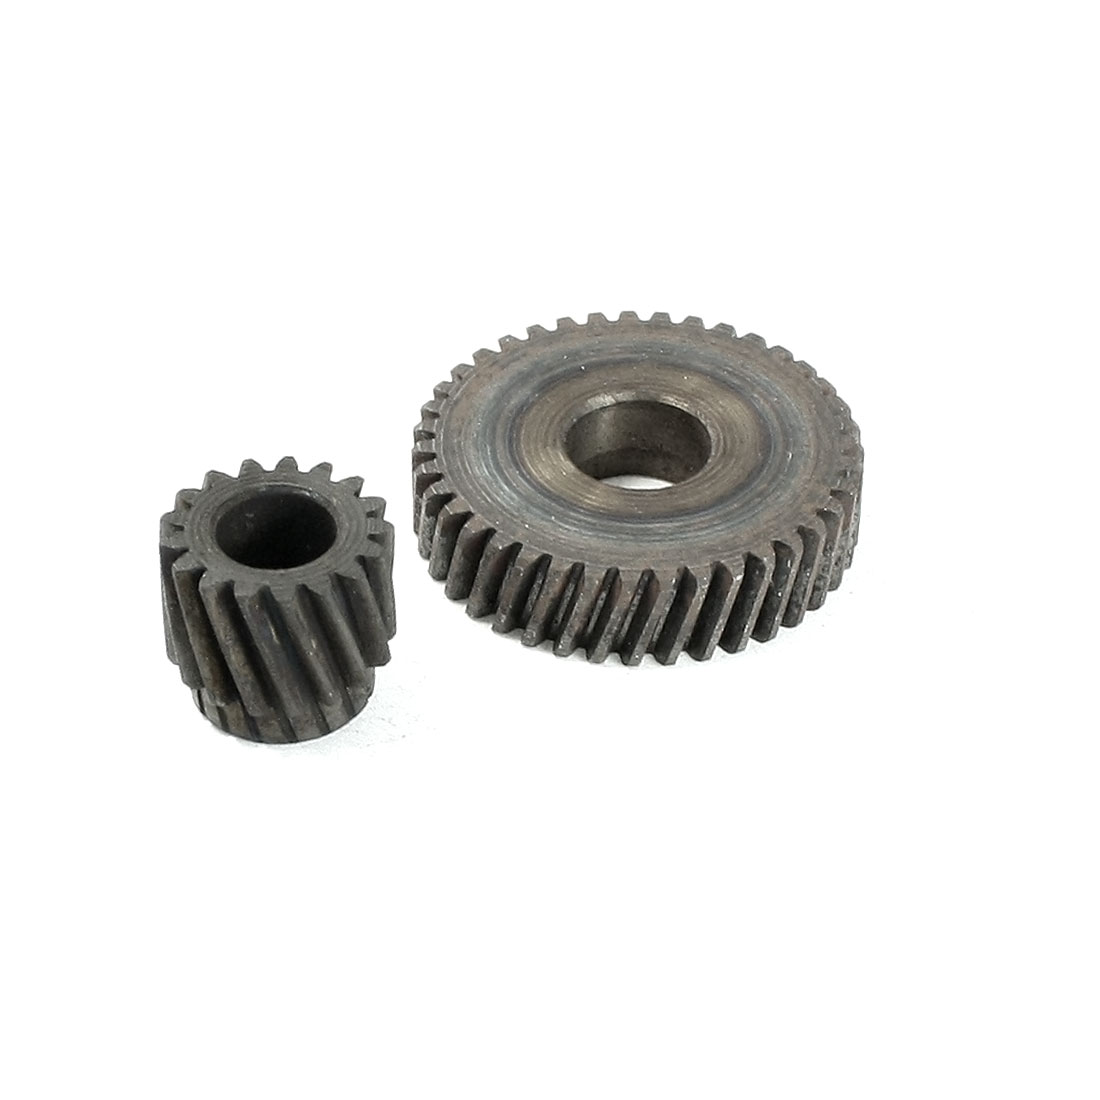 Repair Part Spiral Bevel Gear Pinion Set for Dragon 110 Electric Hammer